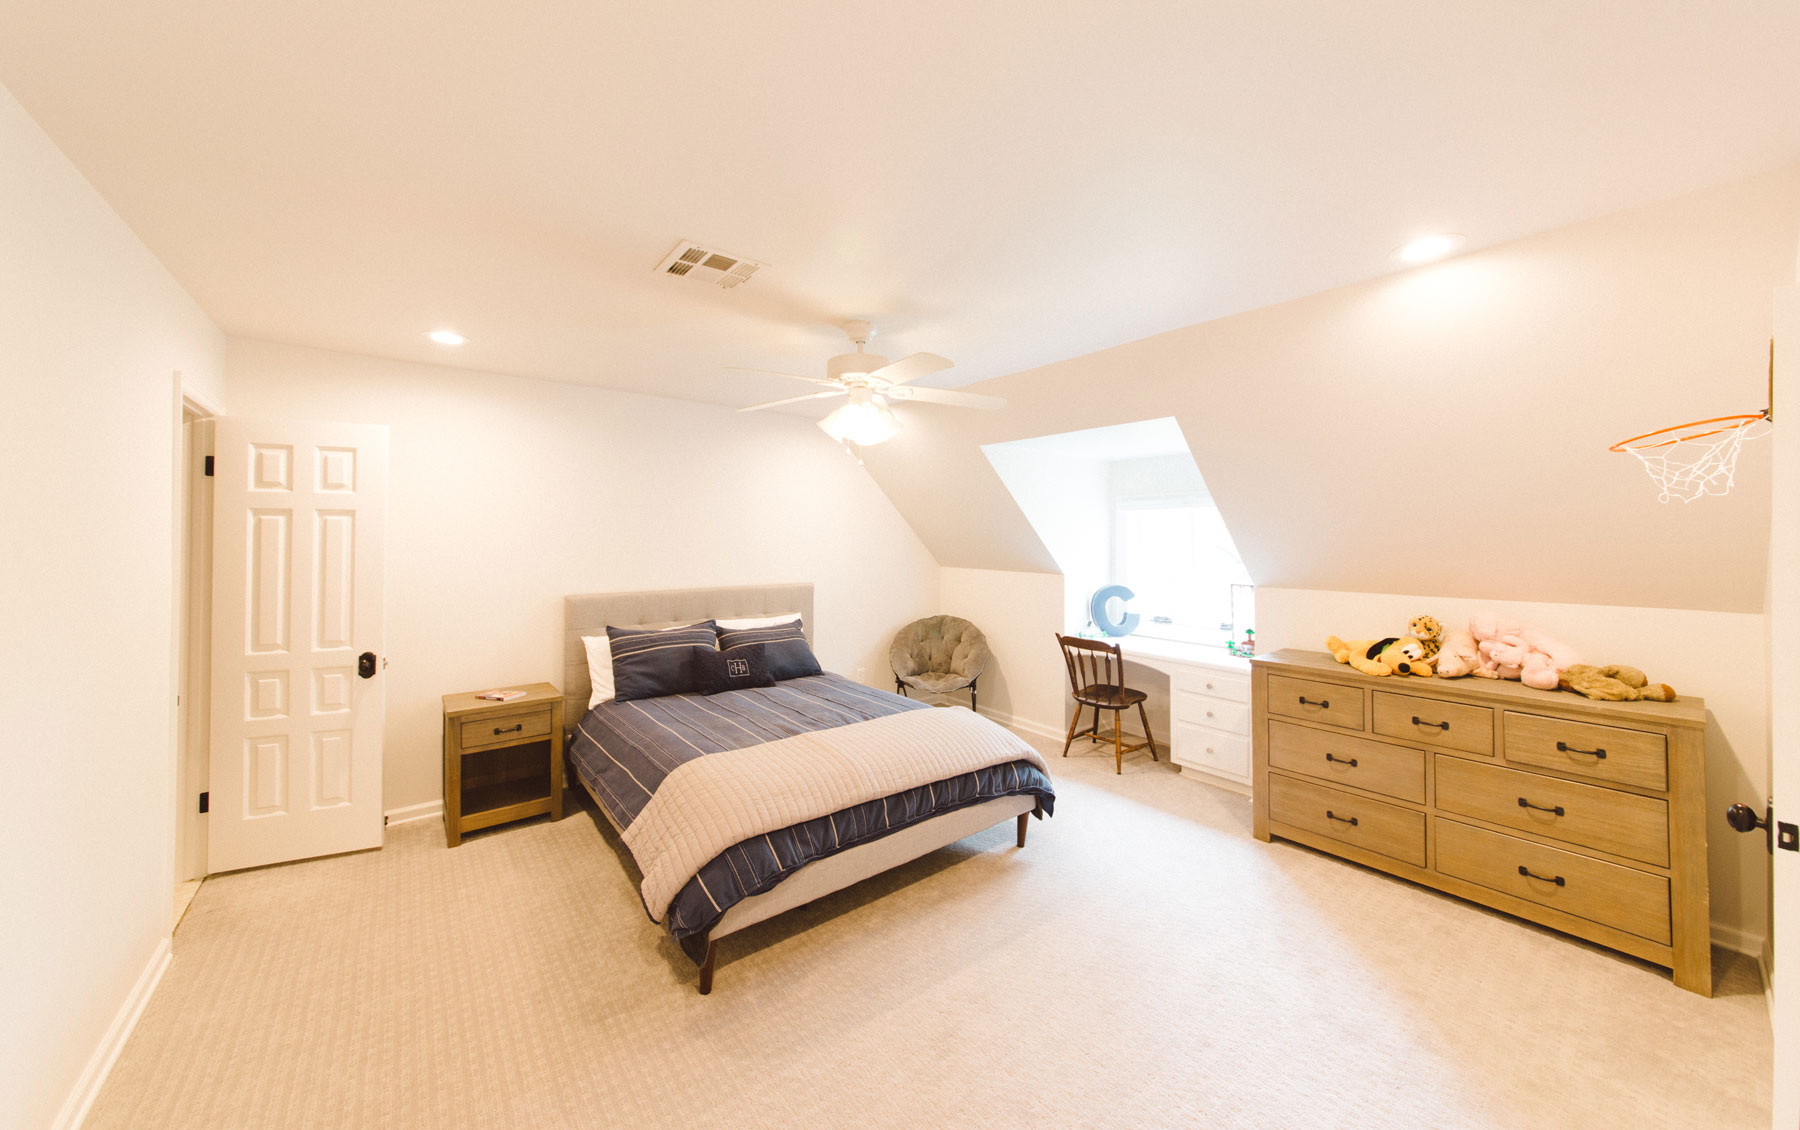 Here S A Look At Some Of The Master Suite And Bedroom Remodels We Ve Taken From Average To Absolutely Stunning A Master Suite Bedroom Remodel May Be Just